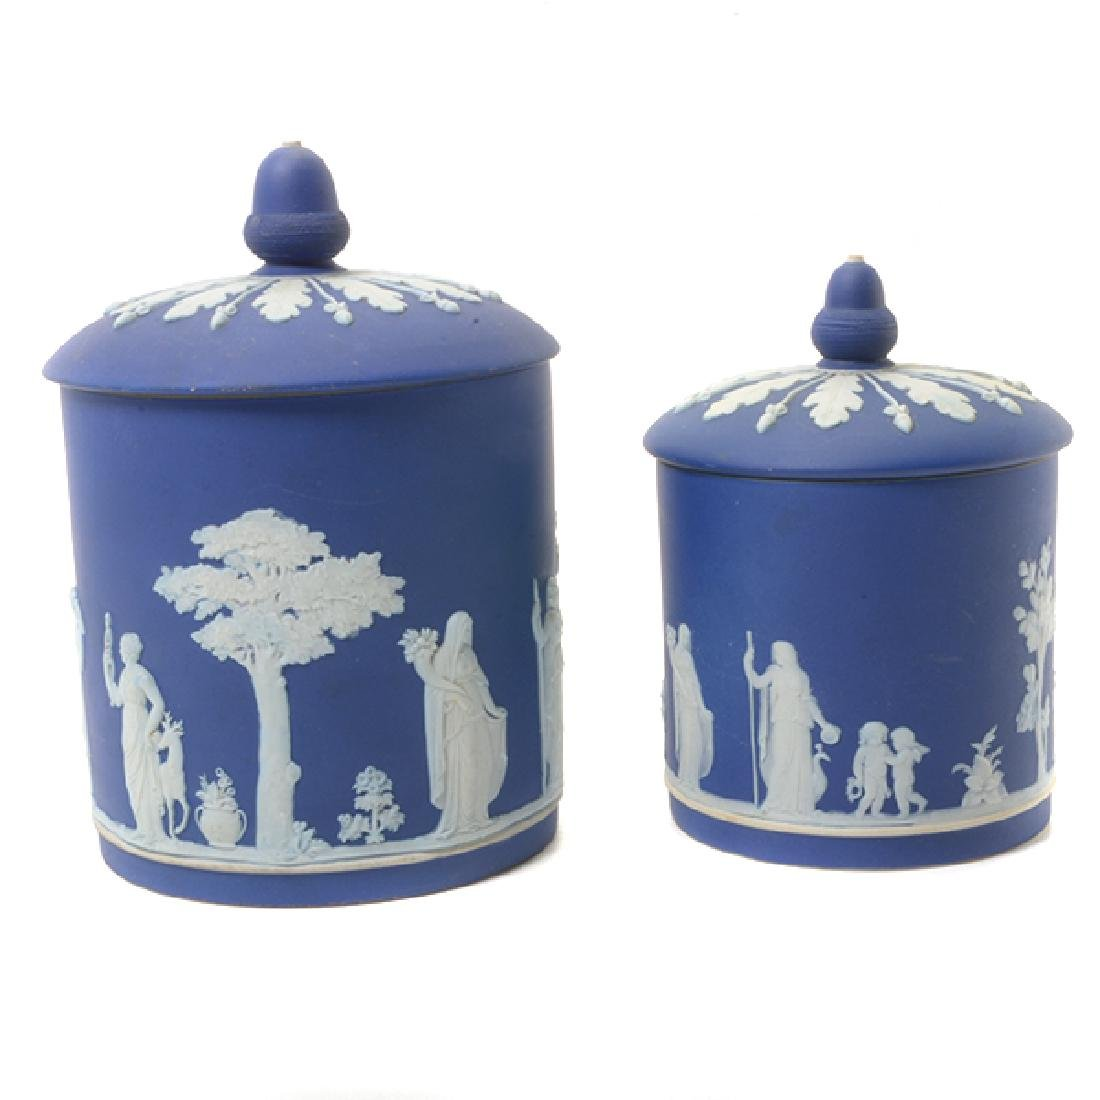 Collection of Wedgwood Jasperware Table Articles - 2